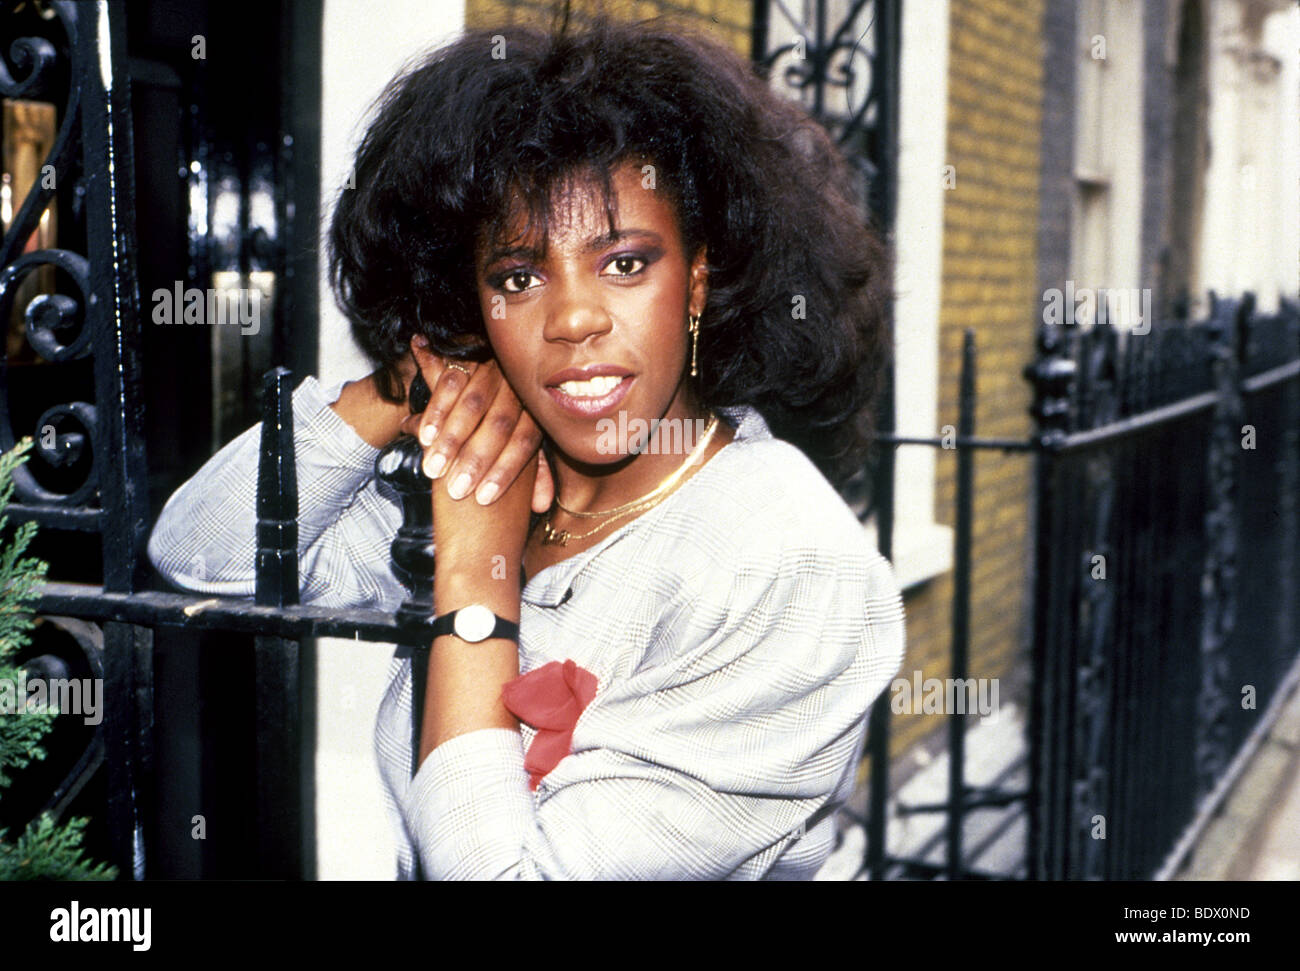 JAKI GRAHAM - UK pop singer in 1985 - Stock Image